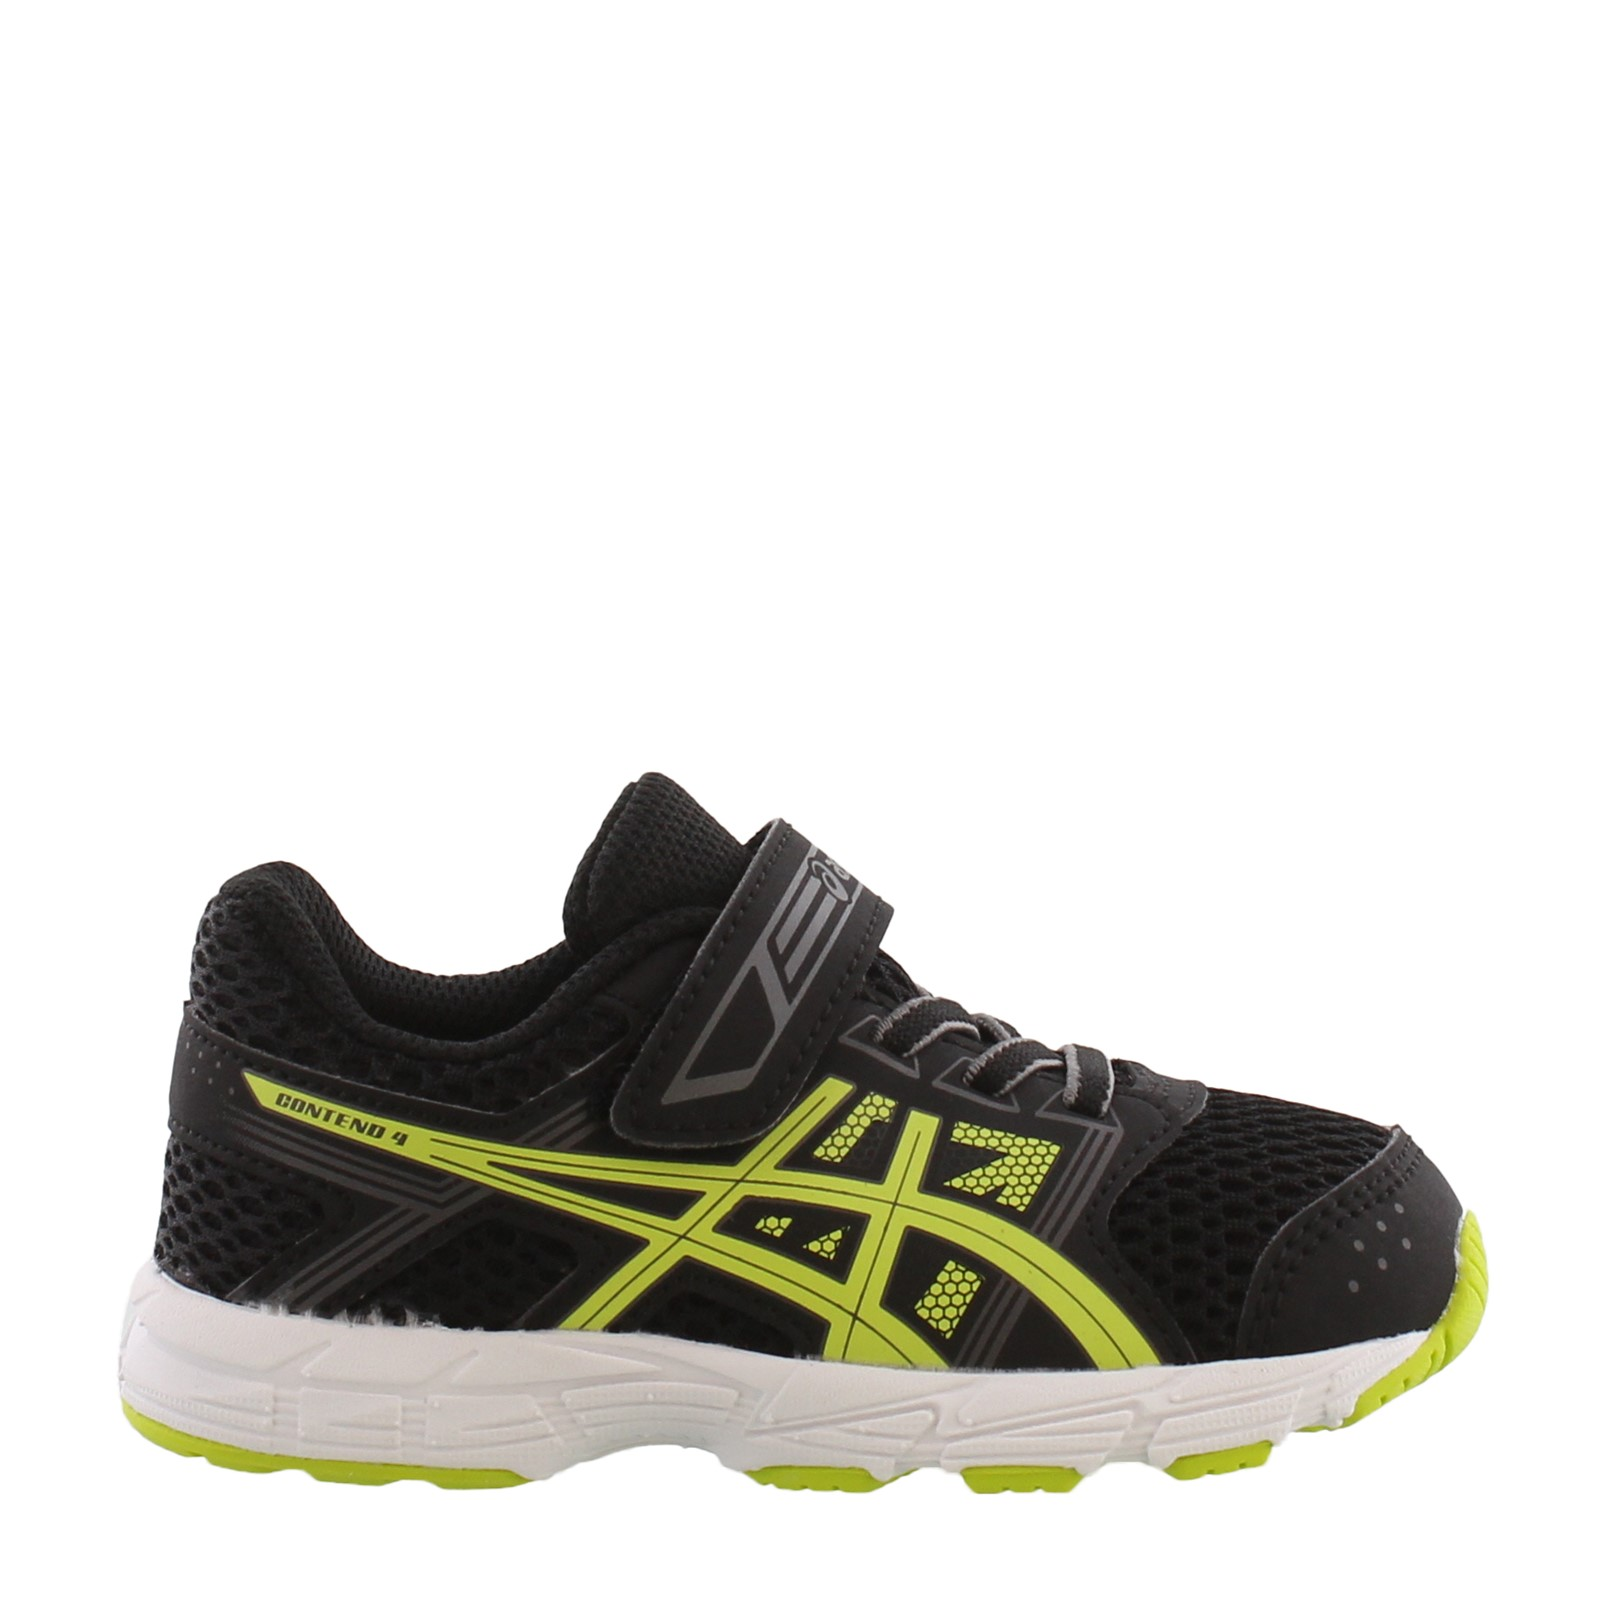 Boy's Asics, Gel Contend 4 TS Running Sneakers